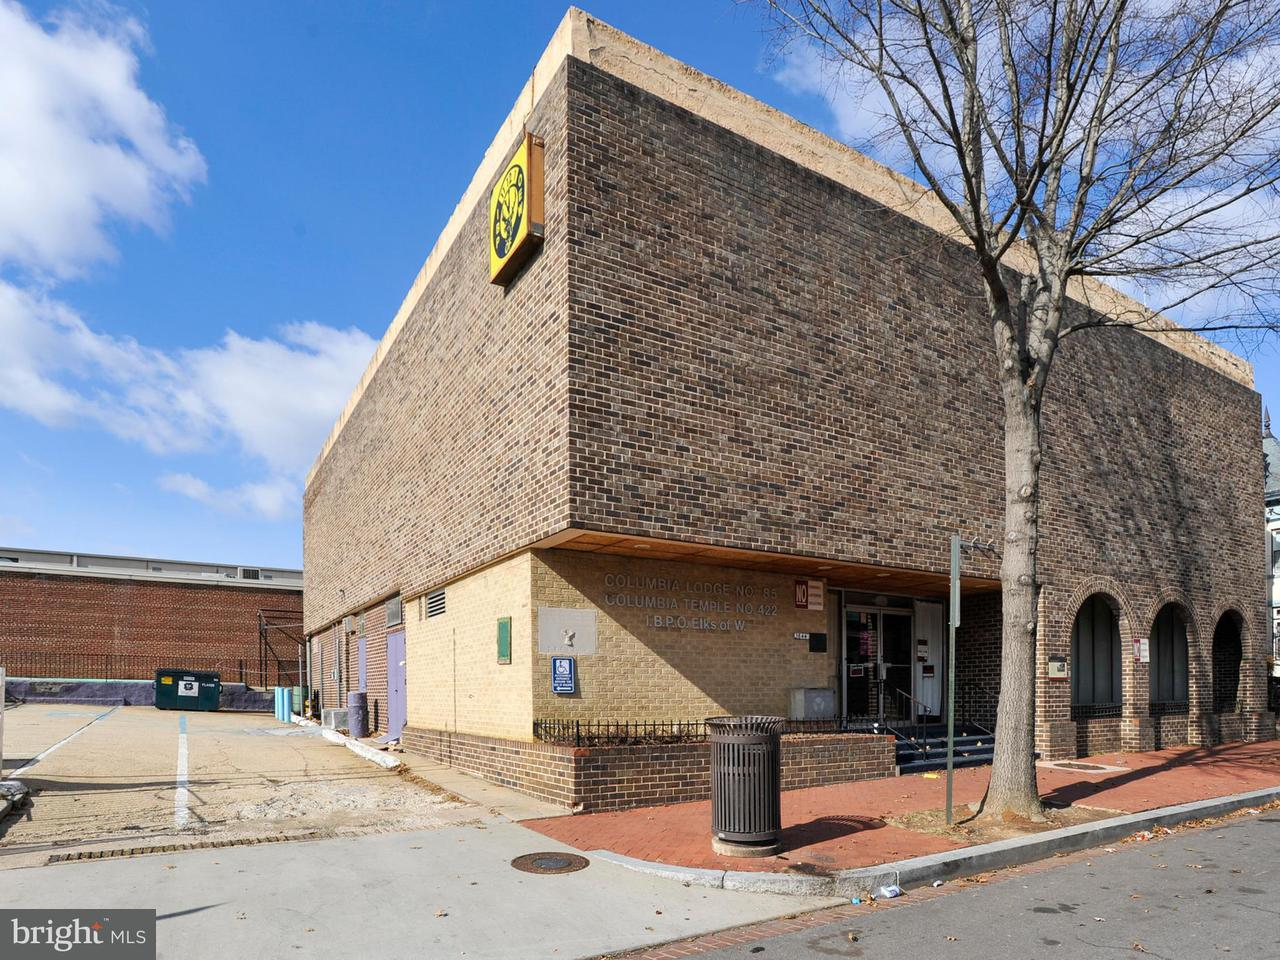 Commercial for Sale at 1844 3rd St Nw 1844 3rd St Nw Washington, District Of Columbia 20001 United States